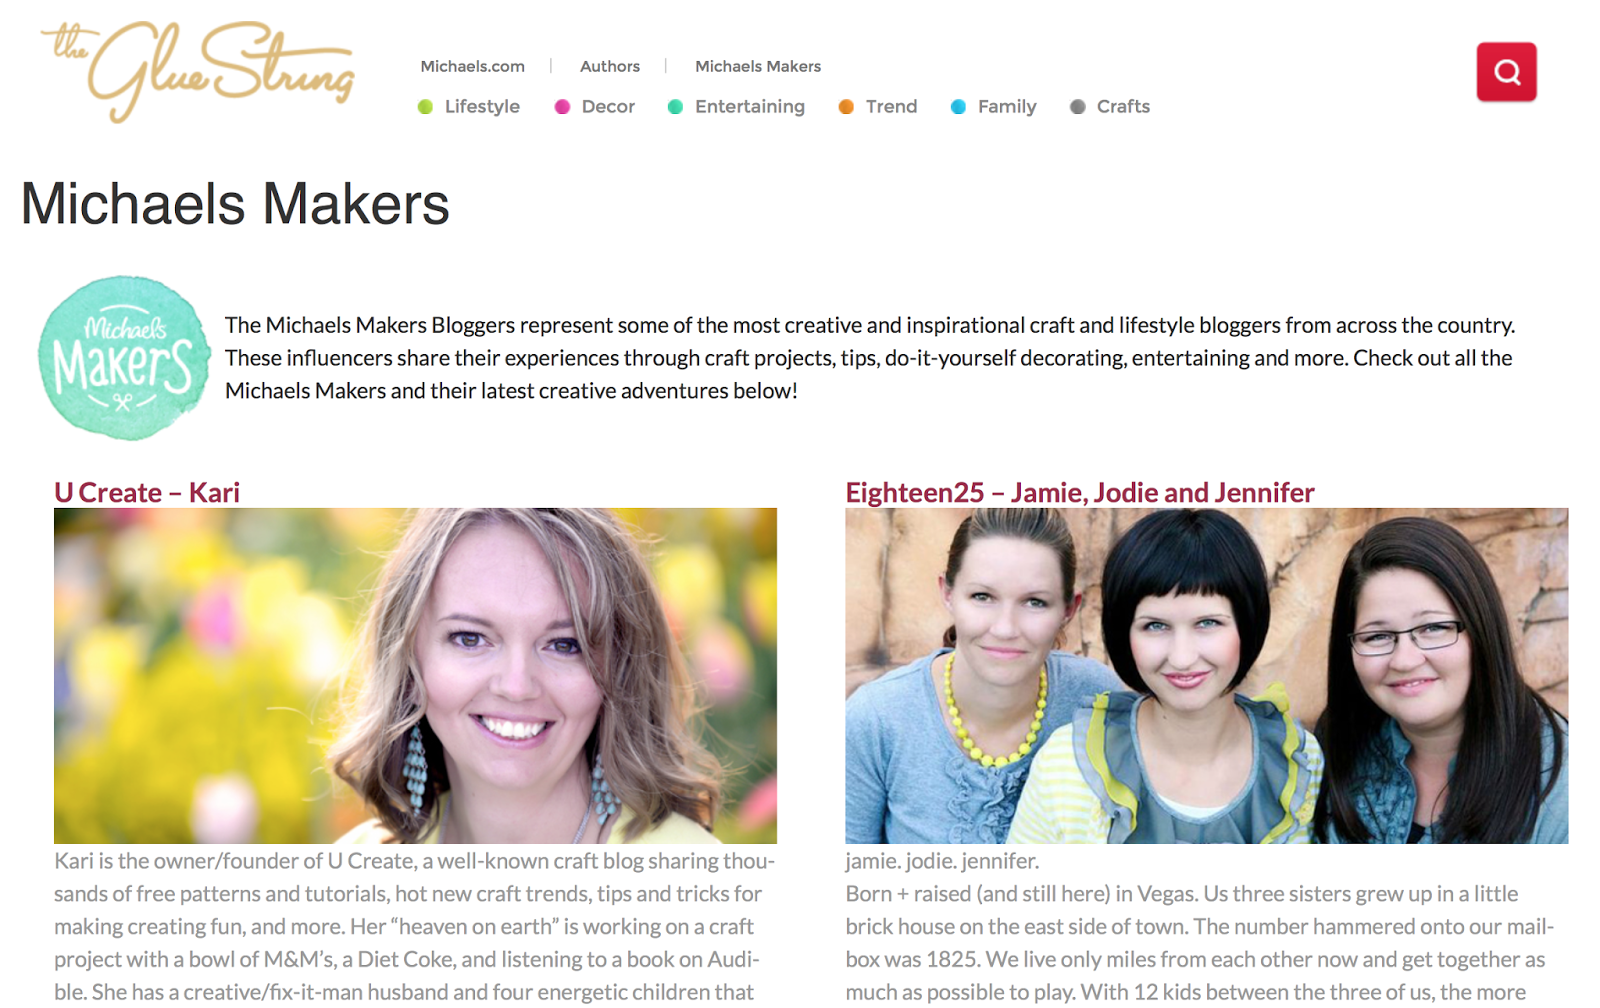 Michaels Makers Bloggers